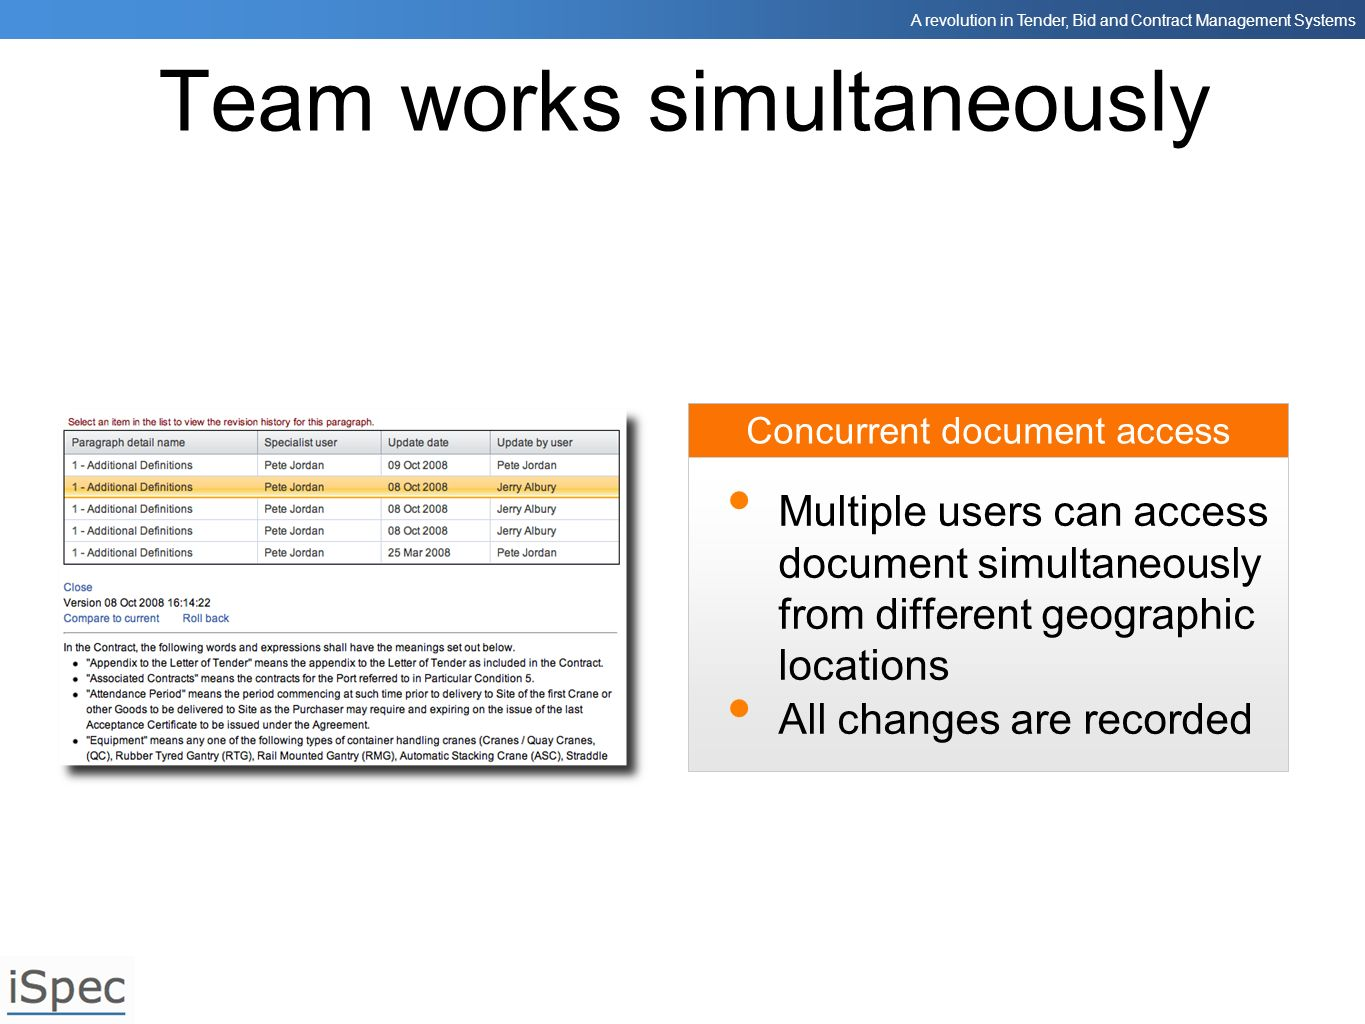 Team works simultaneously